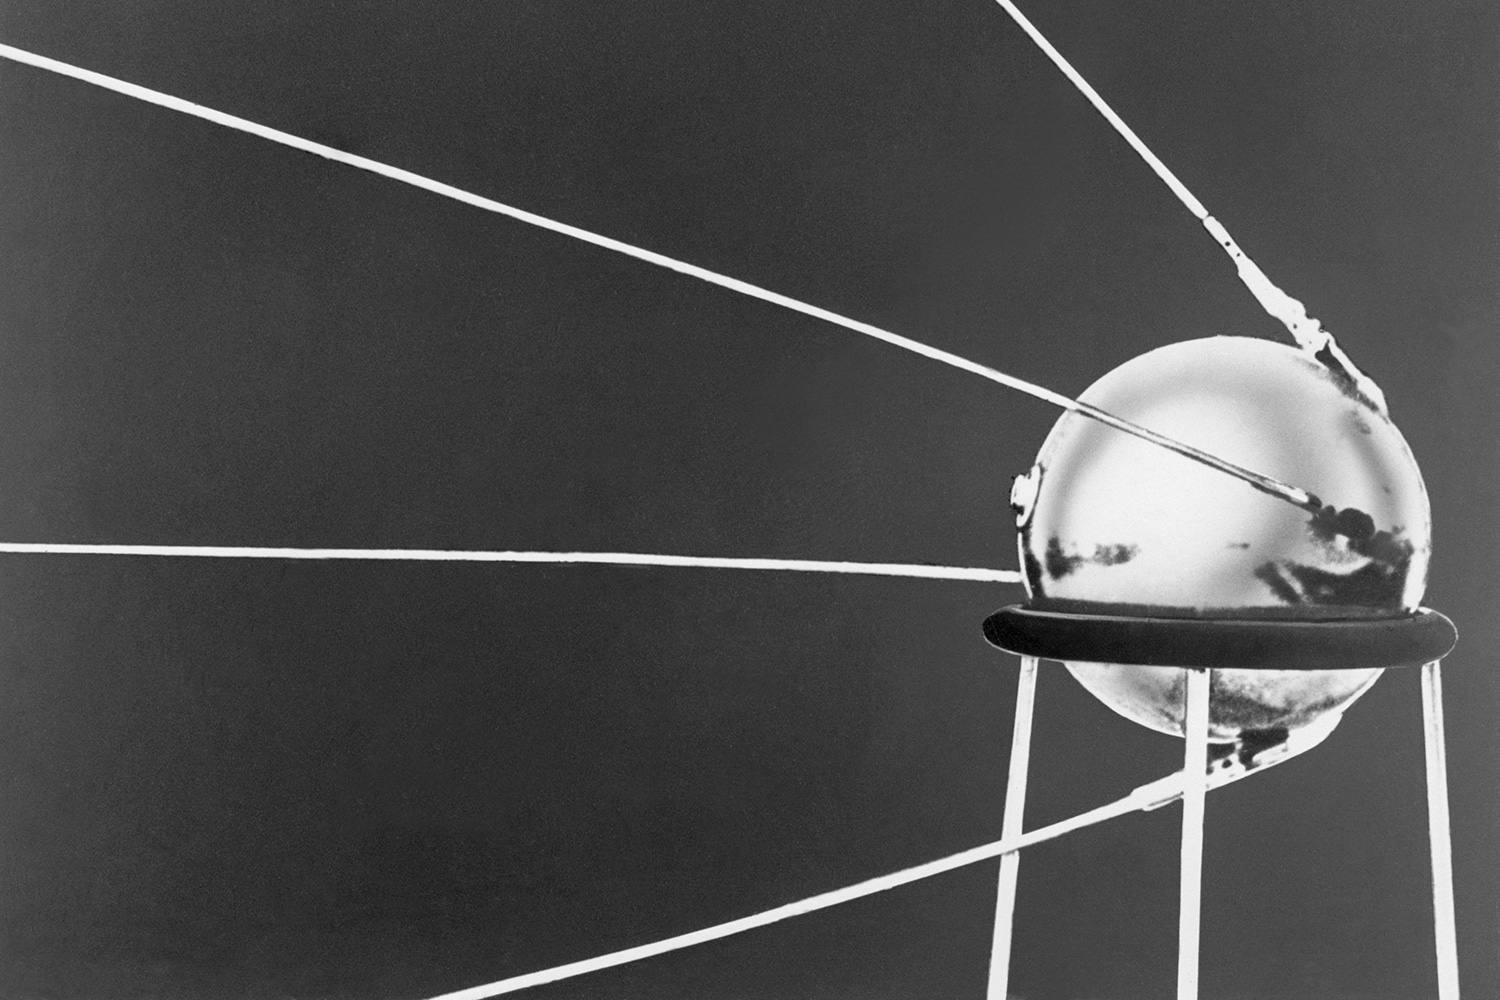 Sputnik I, the first manmade satellite to orbit the Earth, was launched by the Soviets on Oct. 4, 1957.